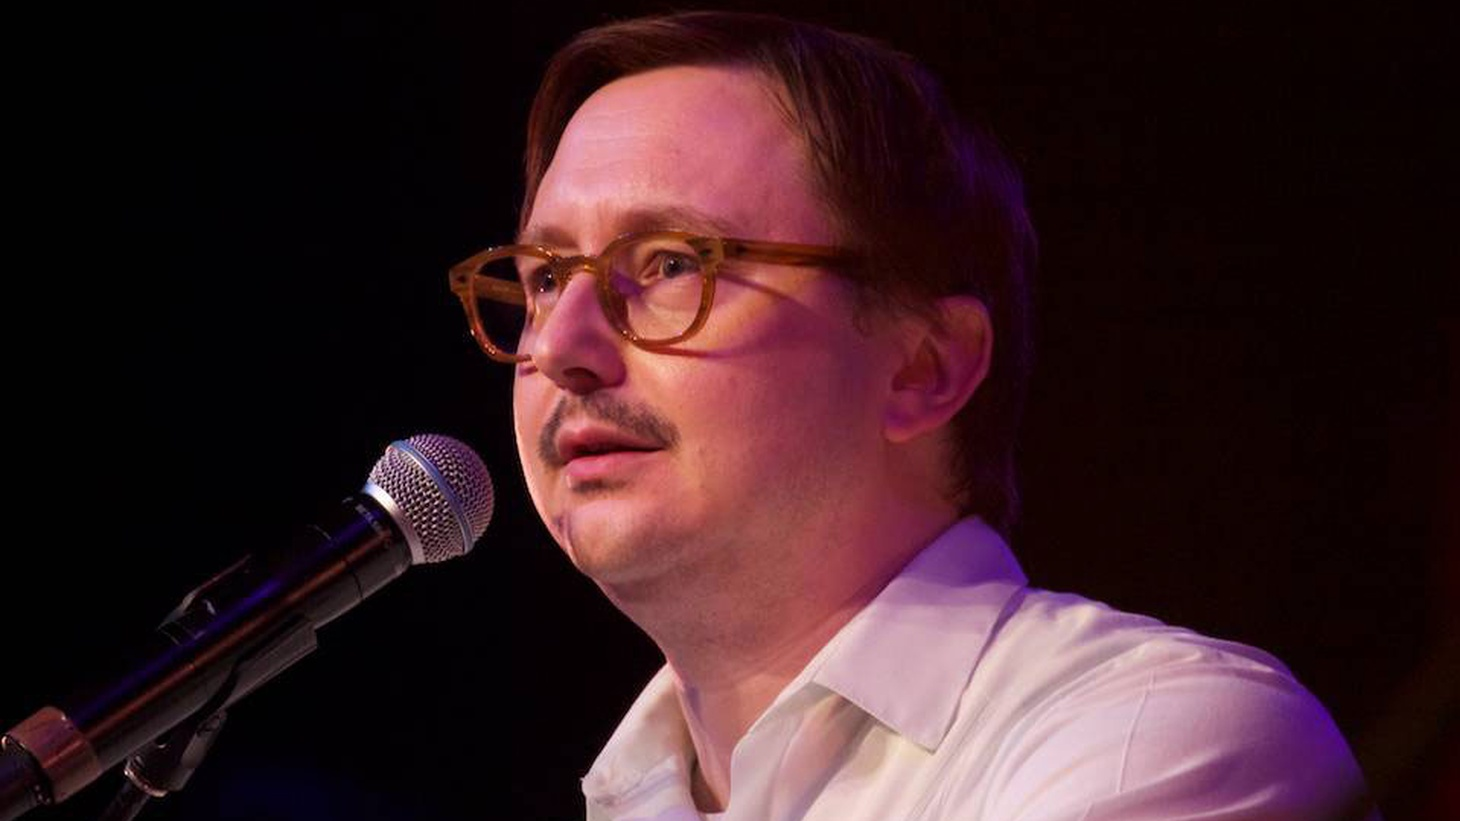 You may remember John Hodgman from the Daily Show, and for playing the PC to Justin Long's Mac in those TV ads. Now he's written a memoir about what he calls his white privilege.